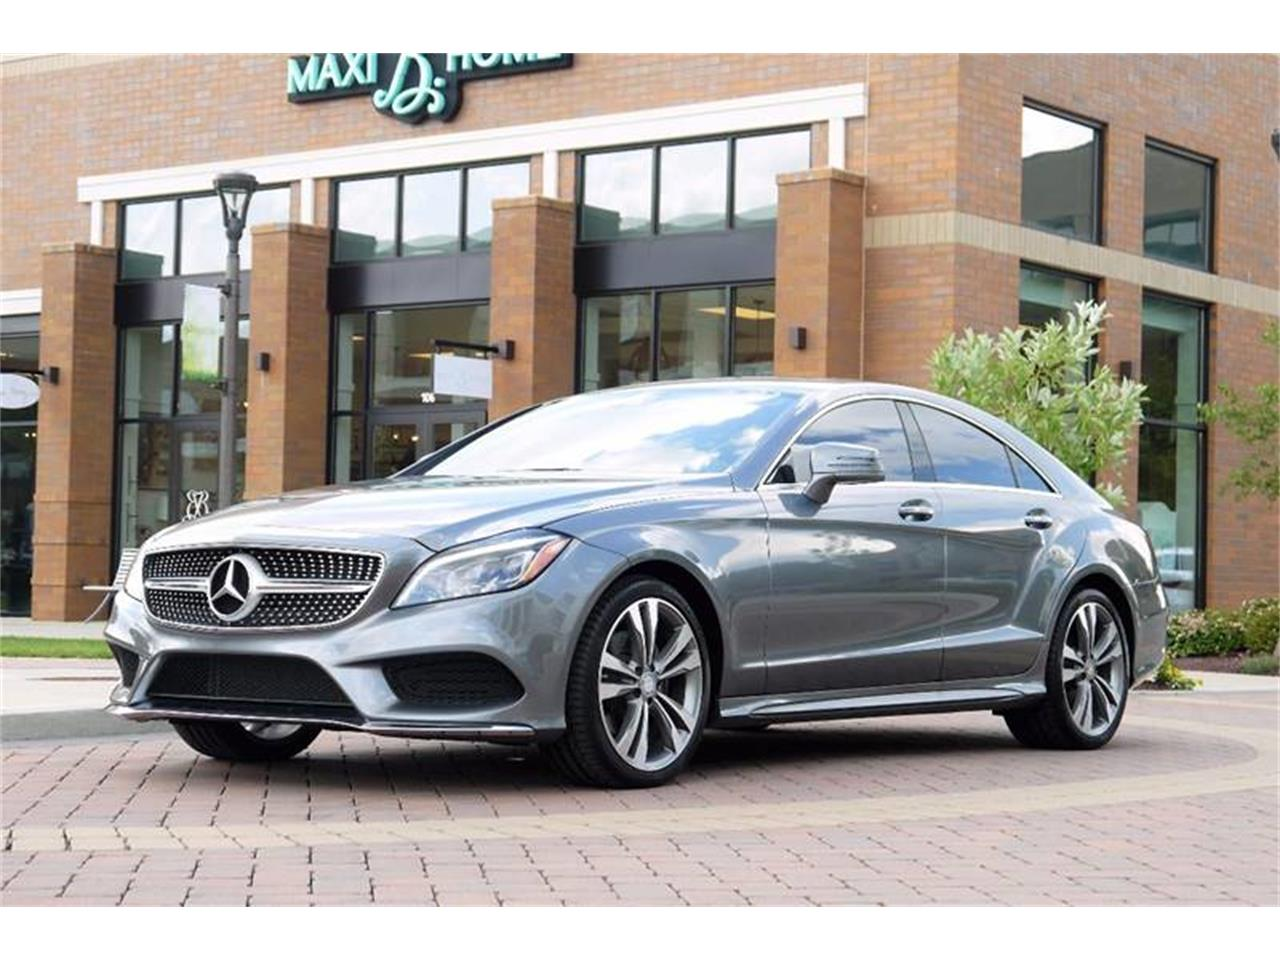 Large Picture of 2016 Mercedes-Benz CLS-Class located in Tennessee - $57,800.00 - LEUE